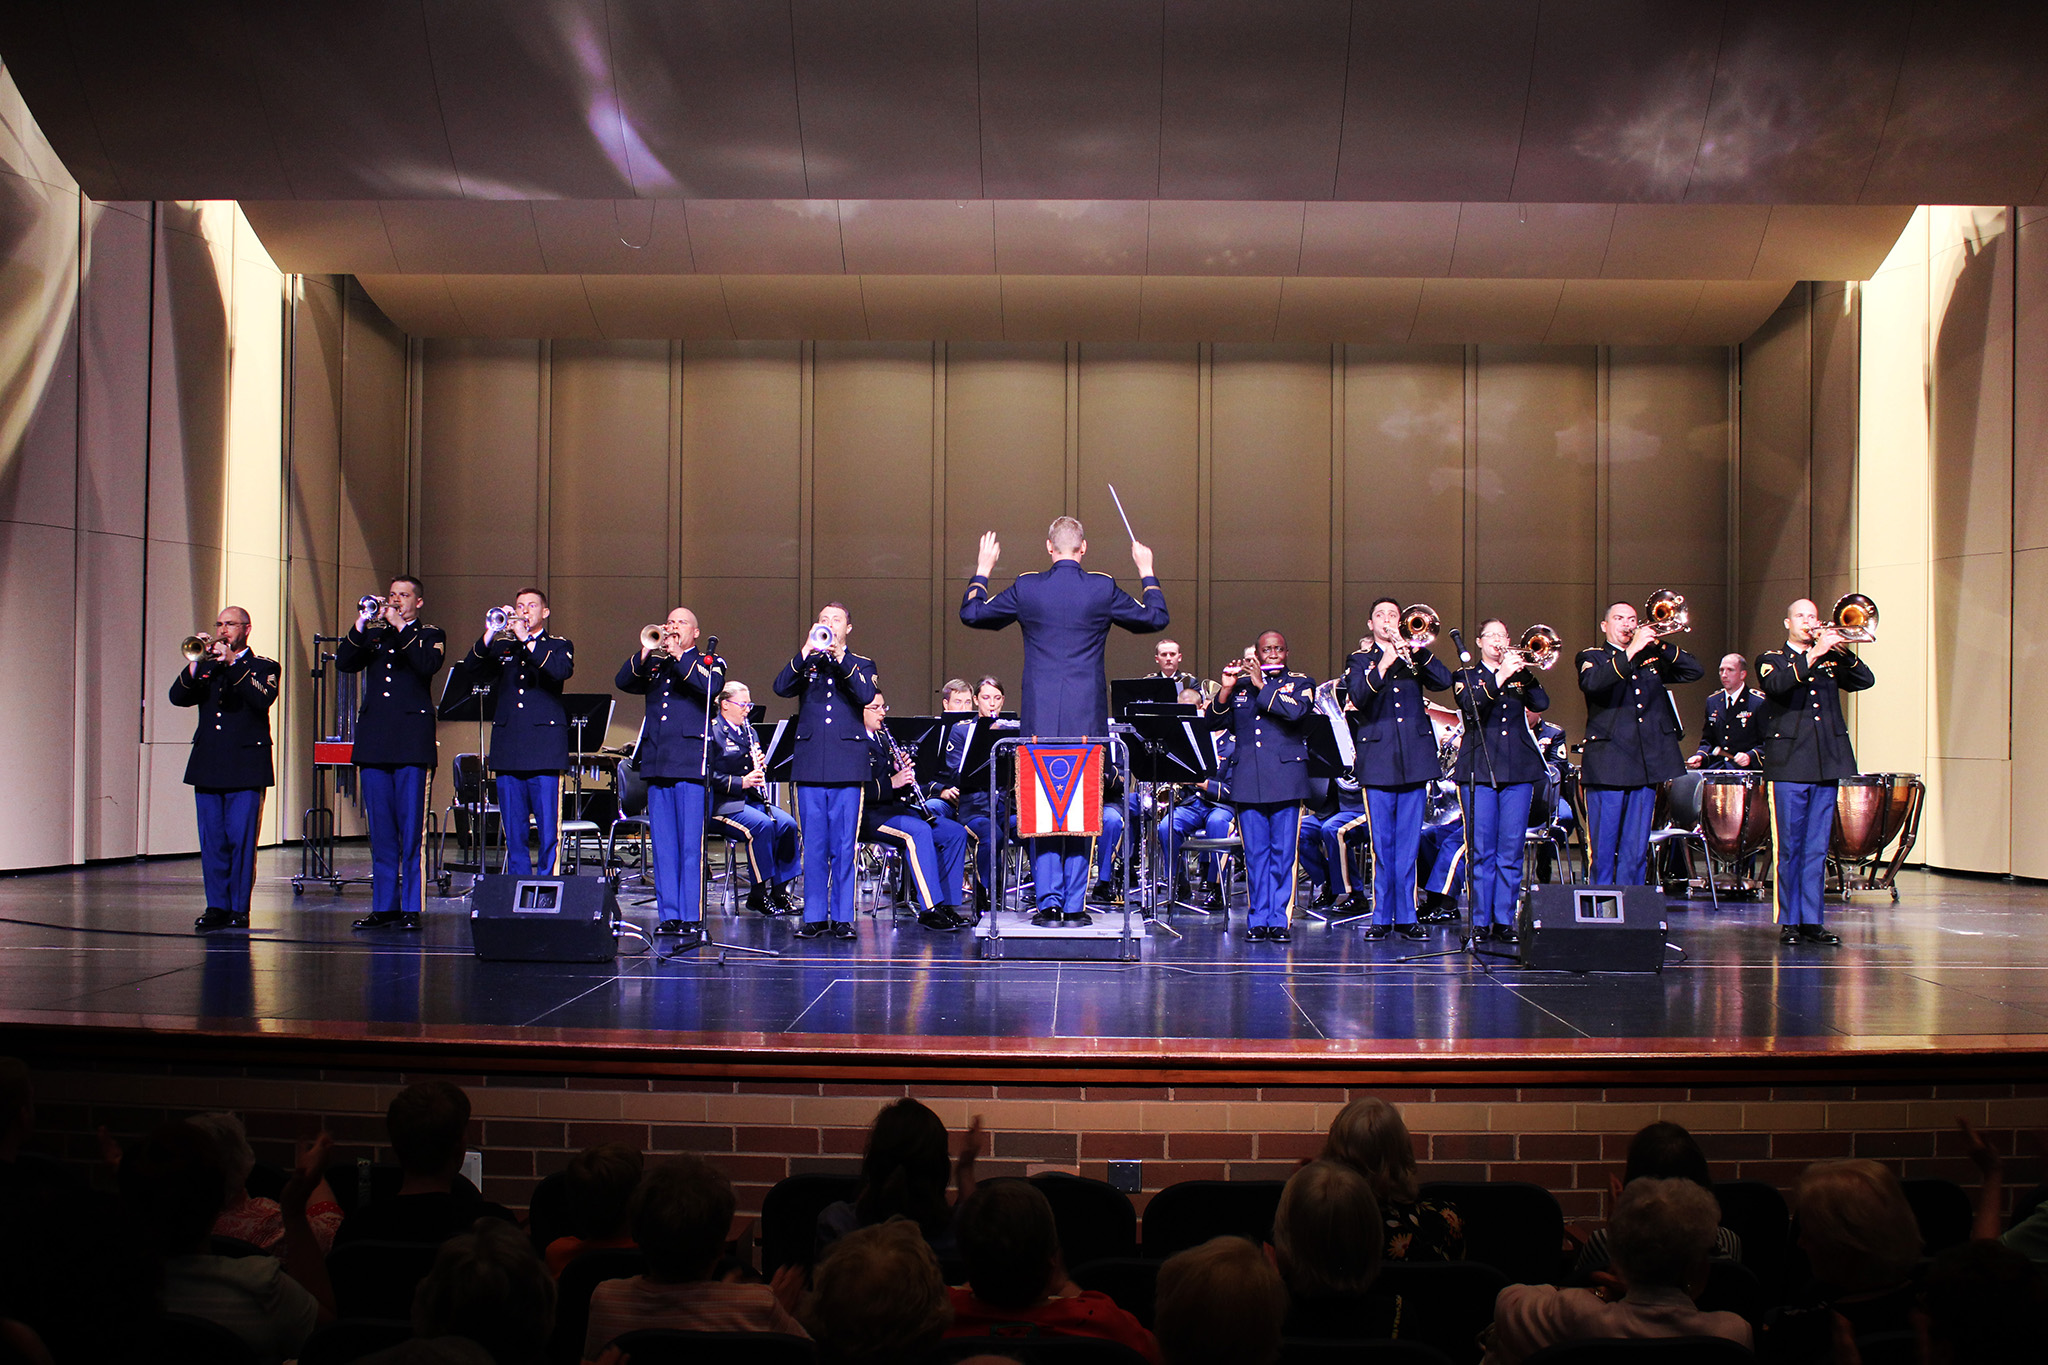 The 122nd Army Band performs The Stars and Stripes Forever at Kenston High School in July 2015